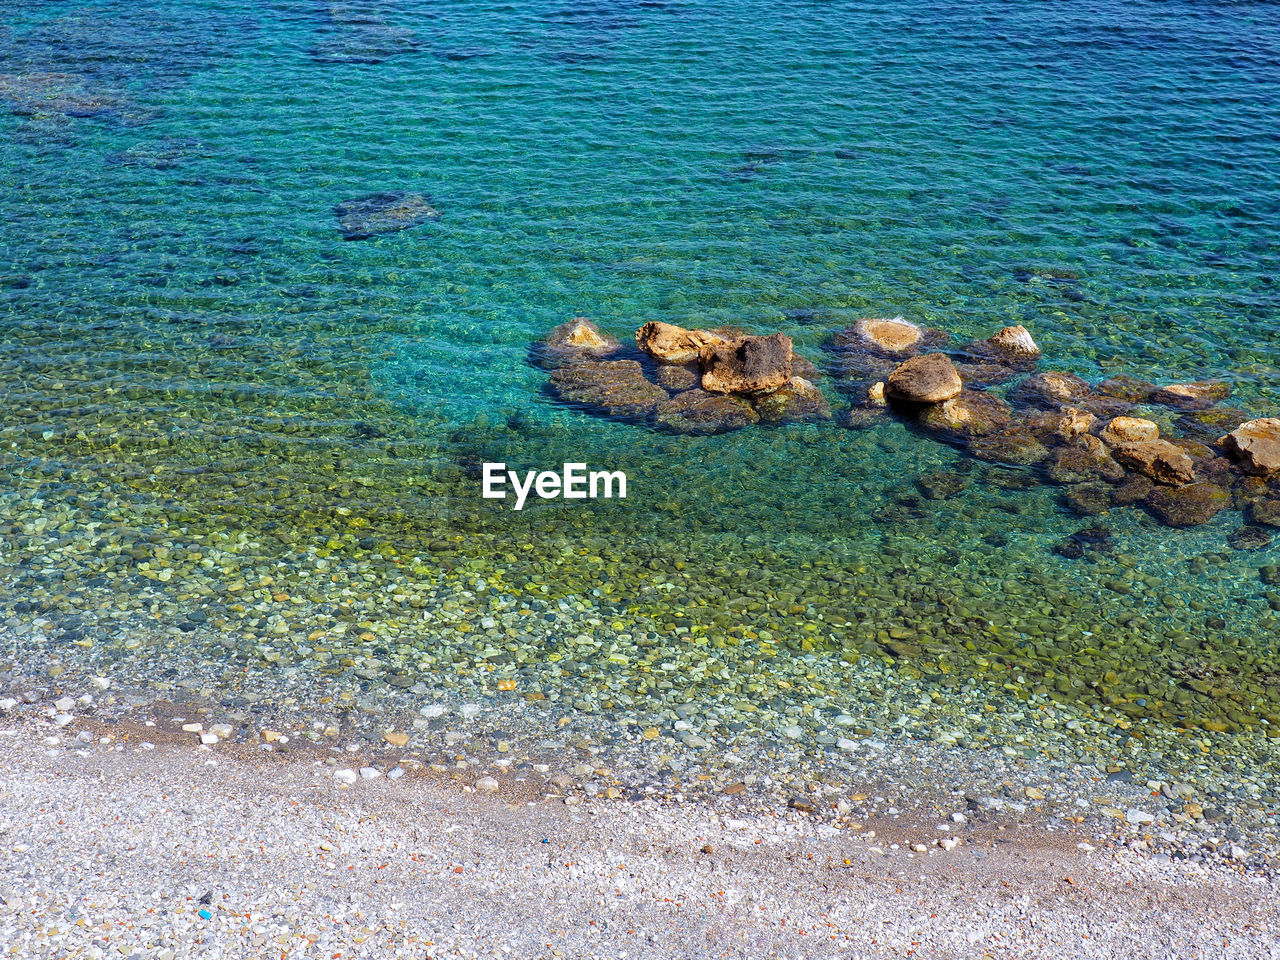 water, sea, nature, tranquility, beauty in nature, no people, day, tranquil scene, scenics - nature, land, high angle view, beach, blue, rock, animal wildlife, outdoors, underwater, solid, sea life, undersea, shallow, marine, turquoise colored